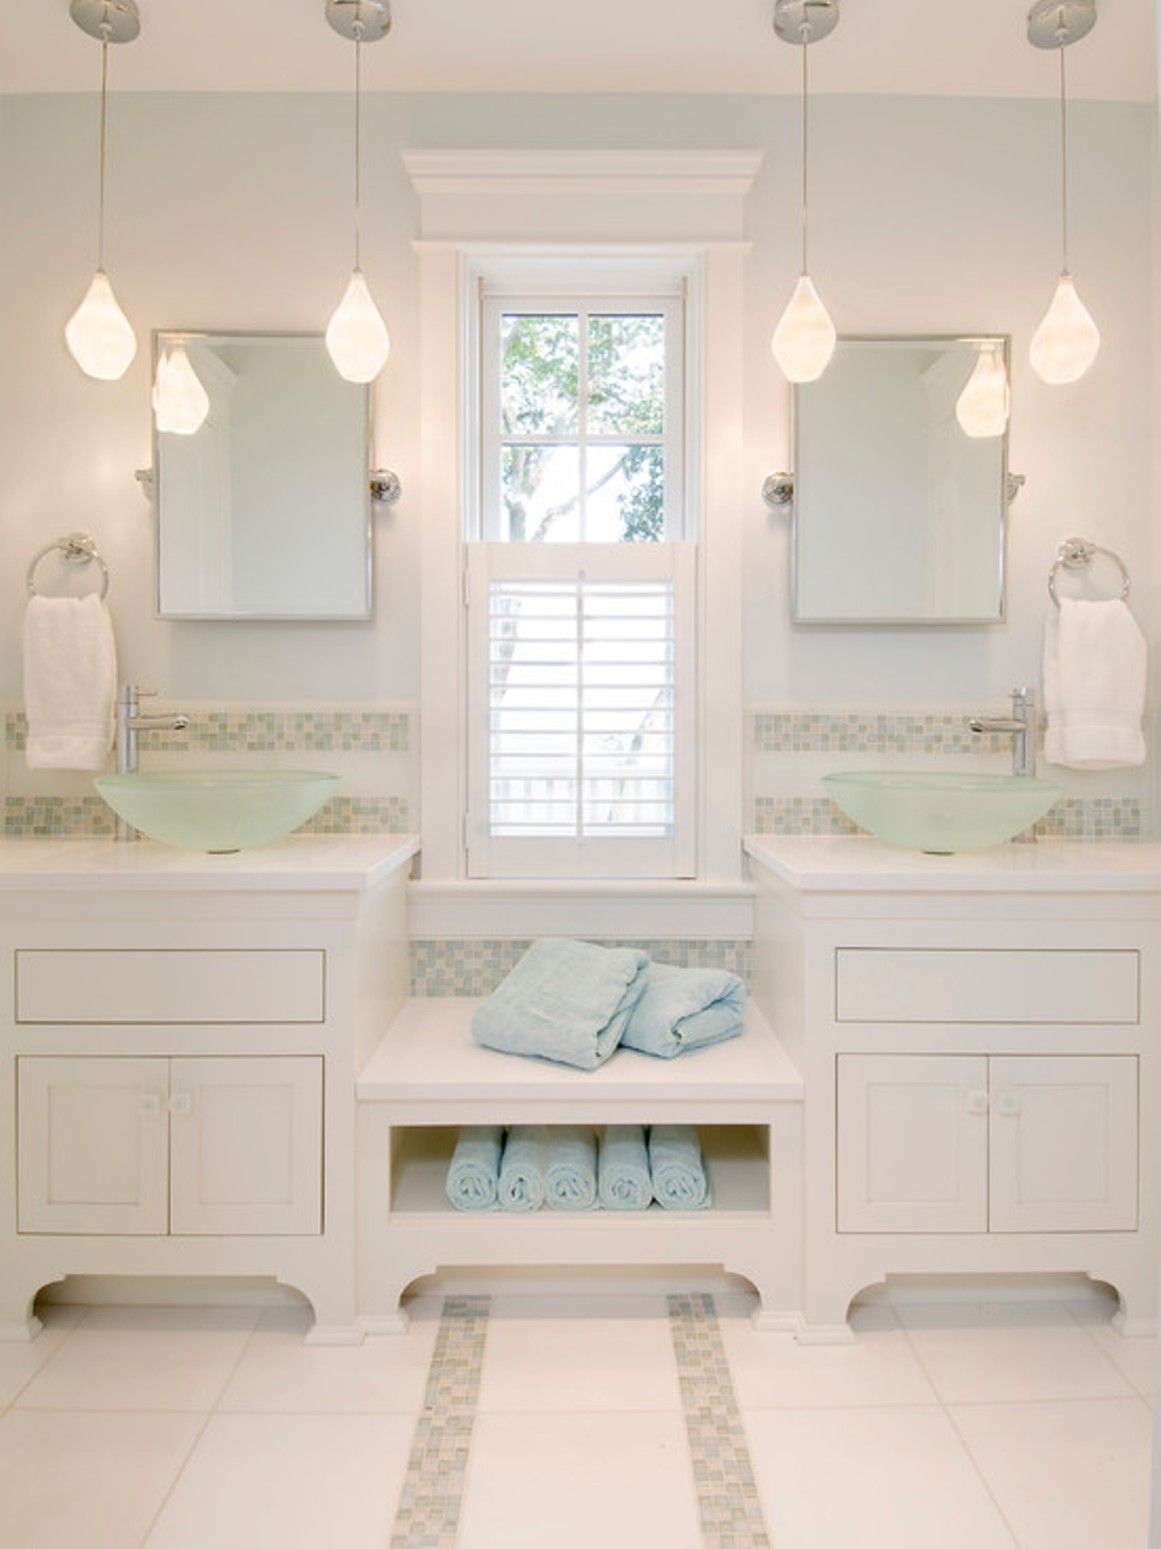 Best Pendant Lighting Bathroom Vanity For Awesome Nuance : White Bathroom  With Pendant Lighting Bathroom Vanity